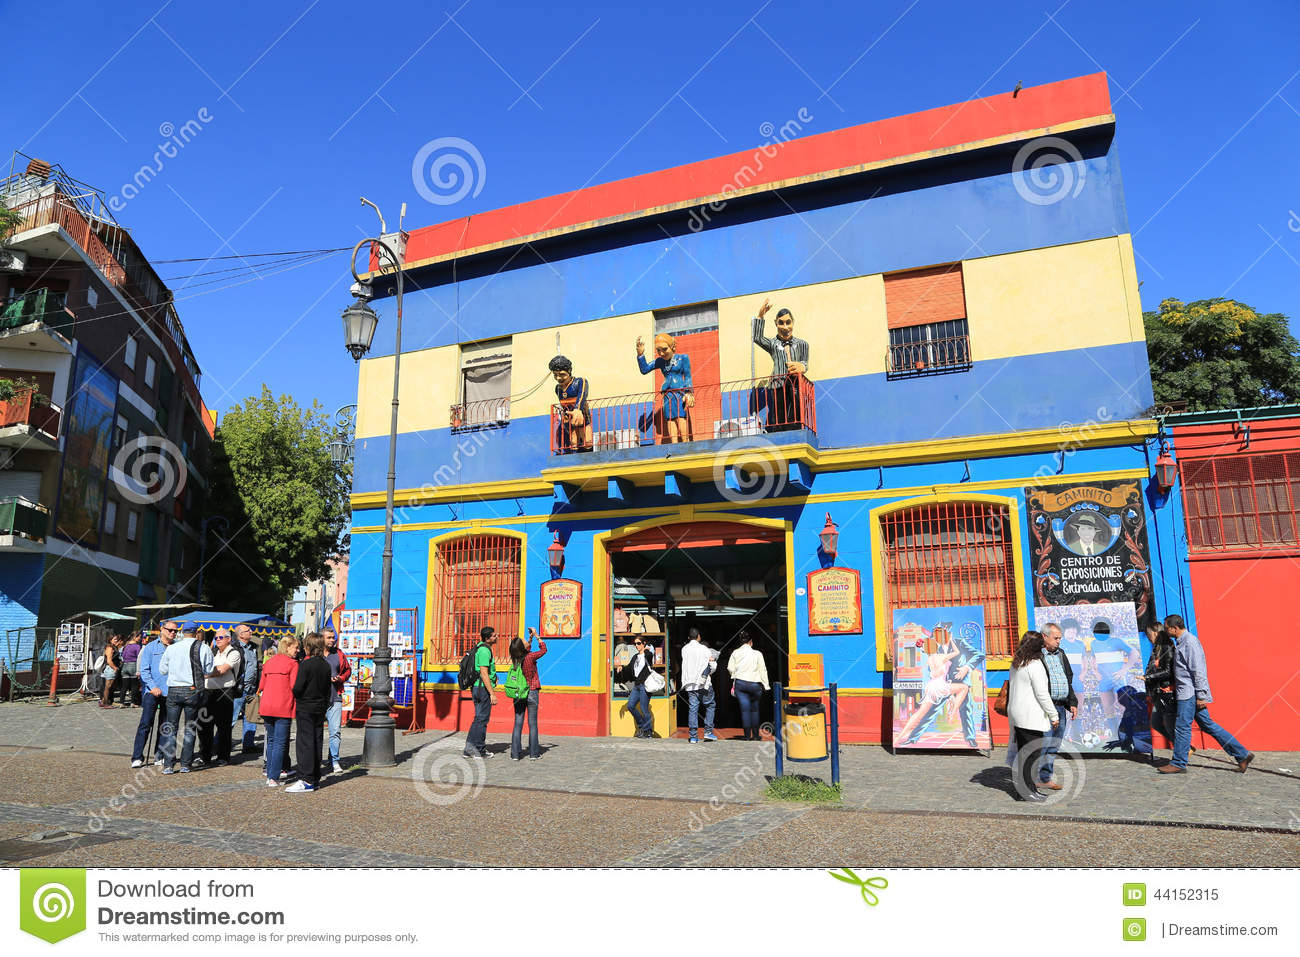 Colorful buildings, La Boca in Buenos Aires